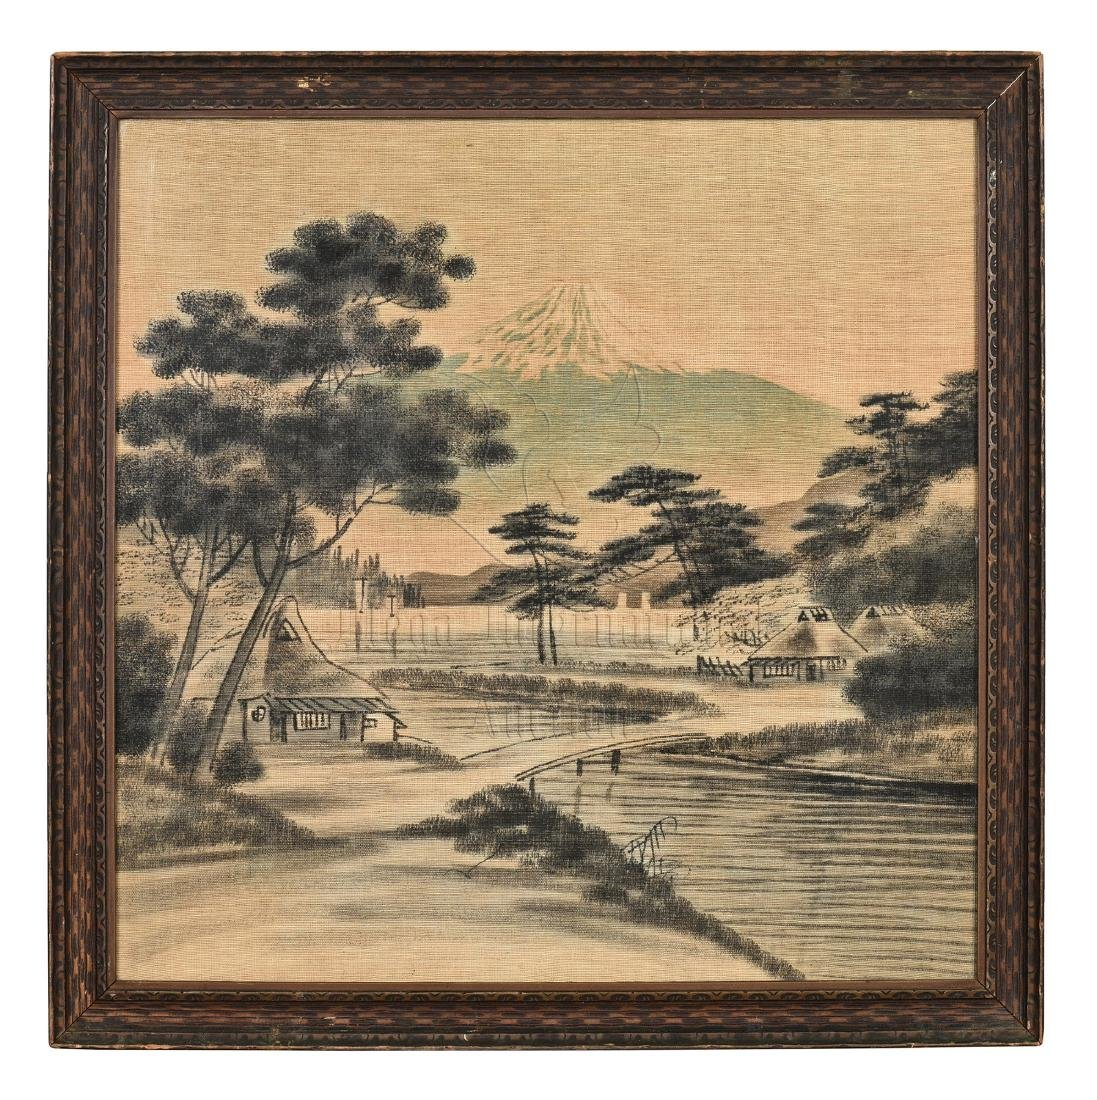 FRAMED INK AND COLOR ON CLOTH PAINTING 'LANDSCAPE